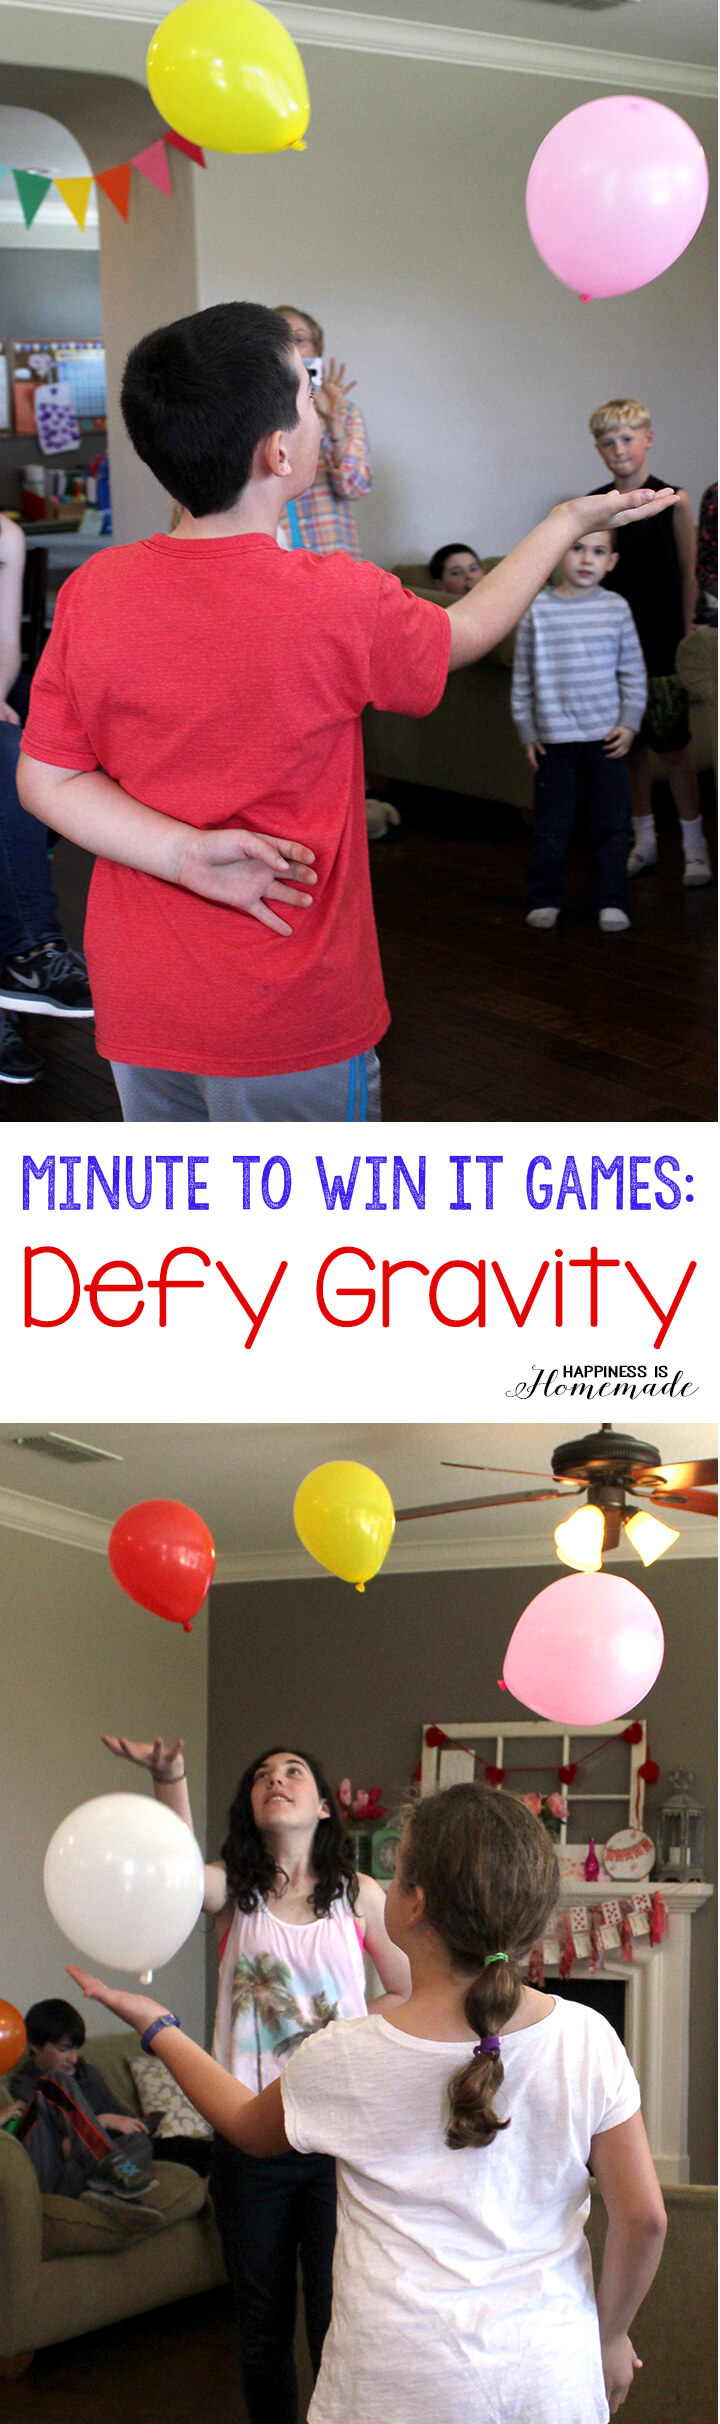 minute to win it games defy gravity